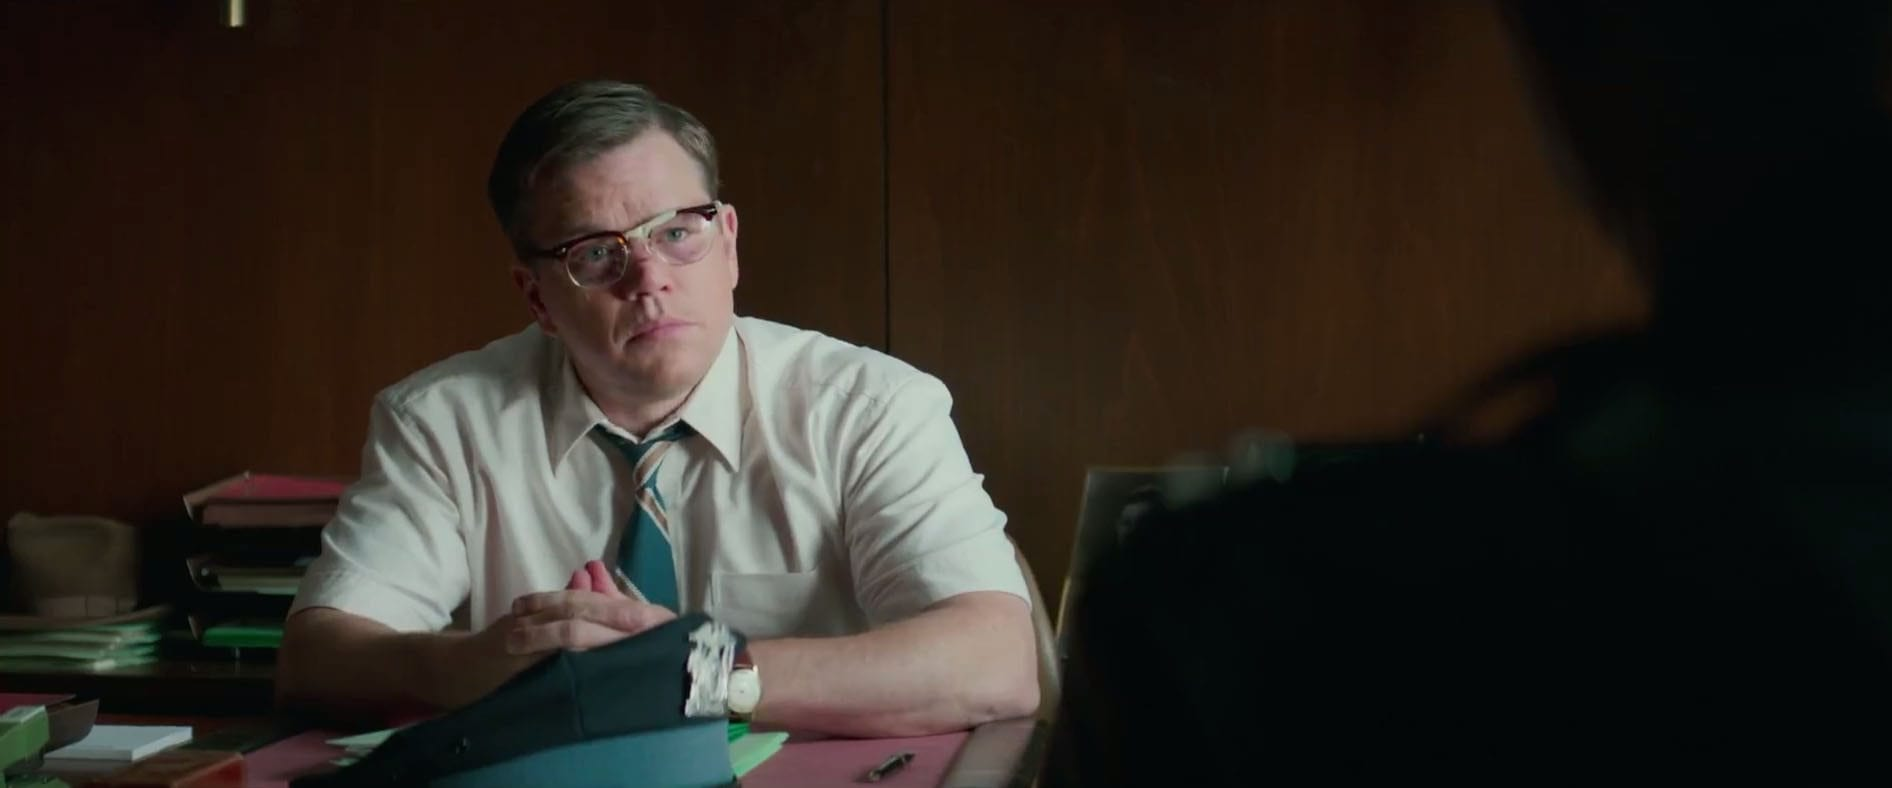 From director George Clooney, 'Suburbicon' is a tale of very flawed people making very bad choices. Stars Matt Damon, Julianne Moore, and Oscar Issac.